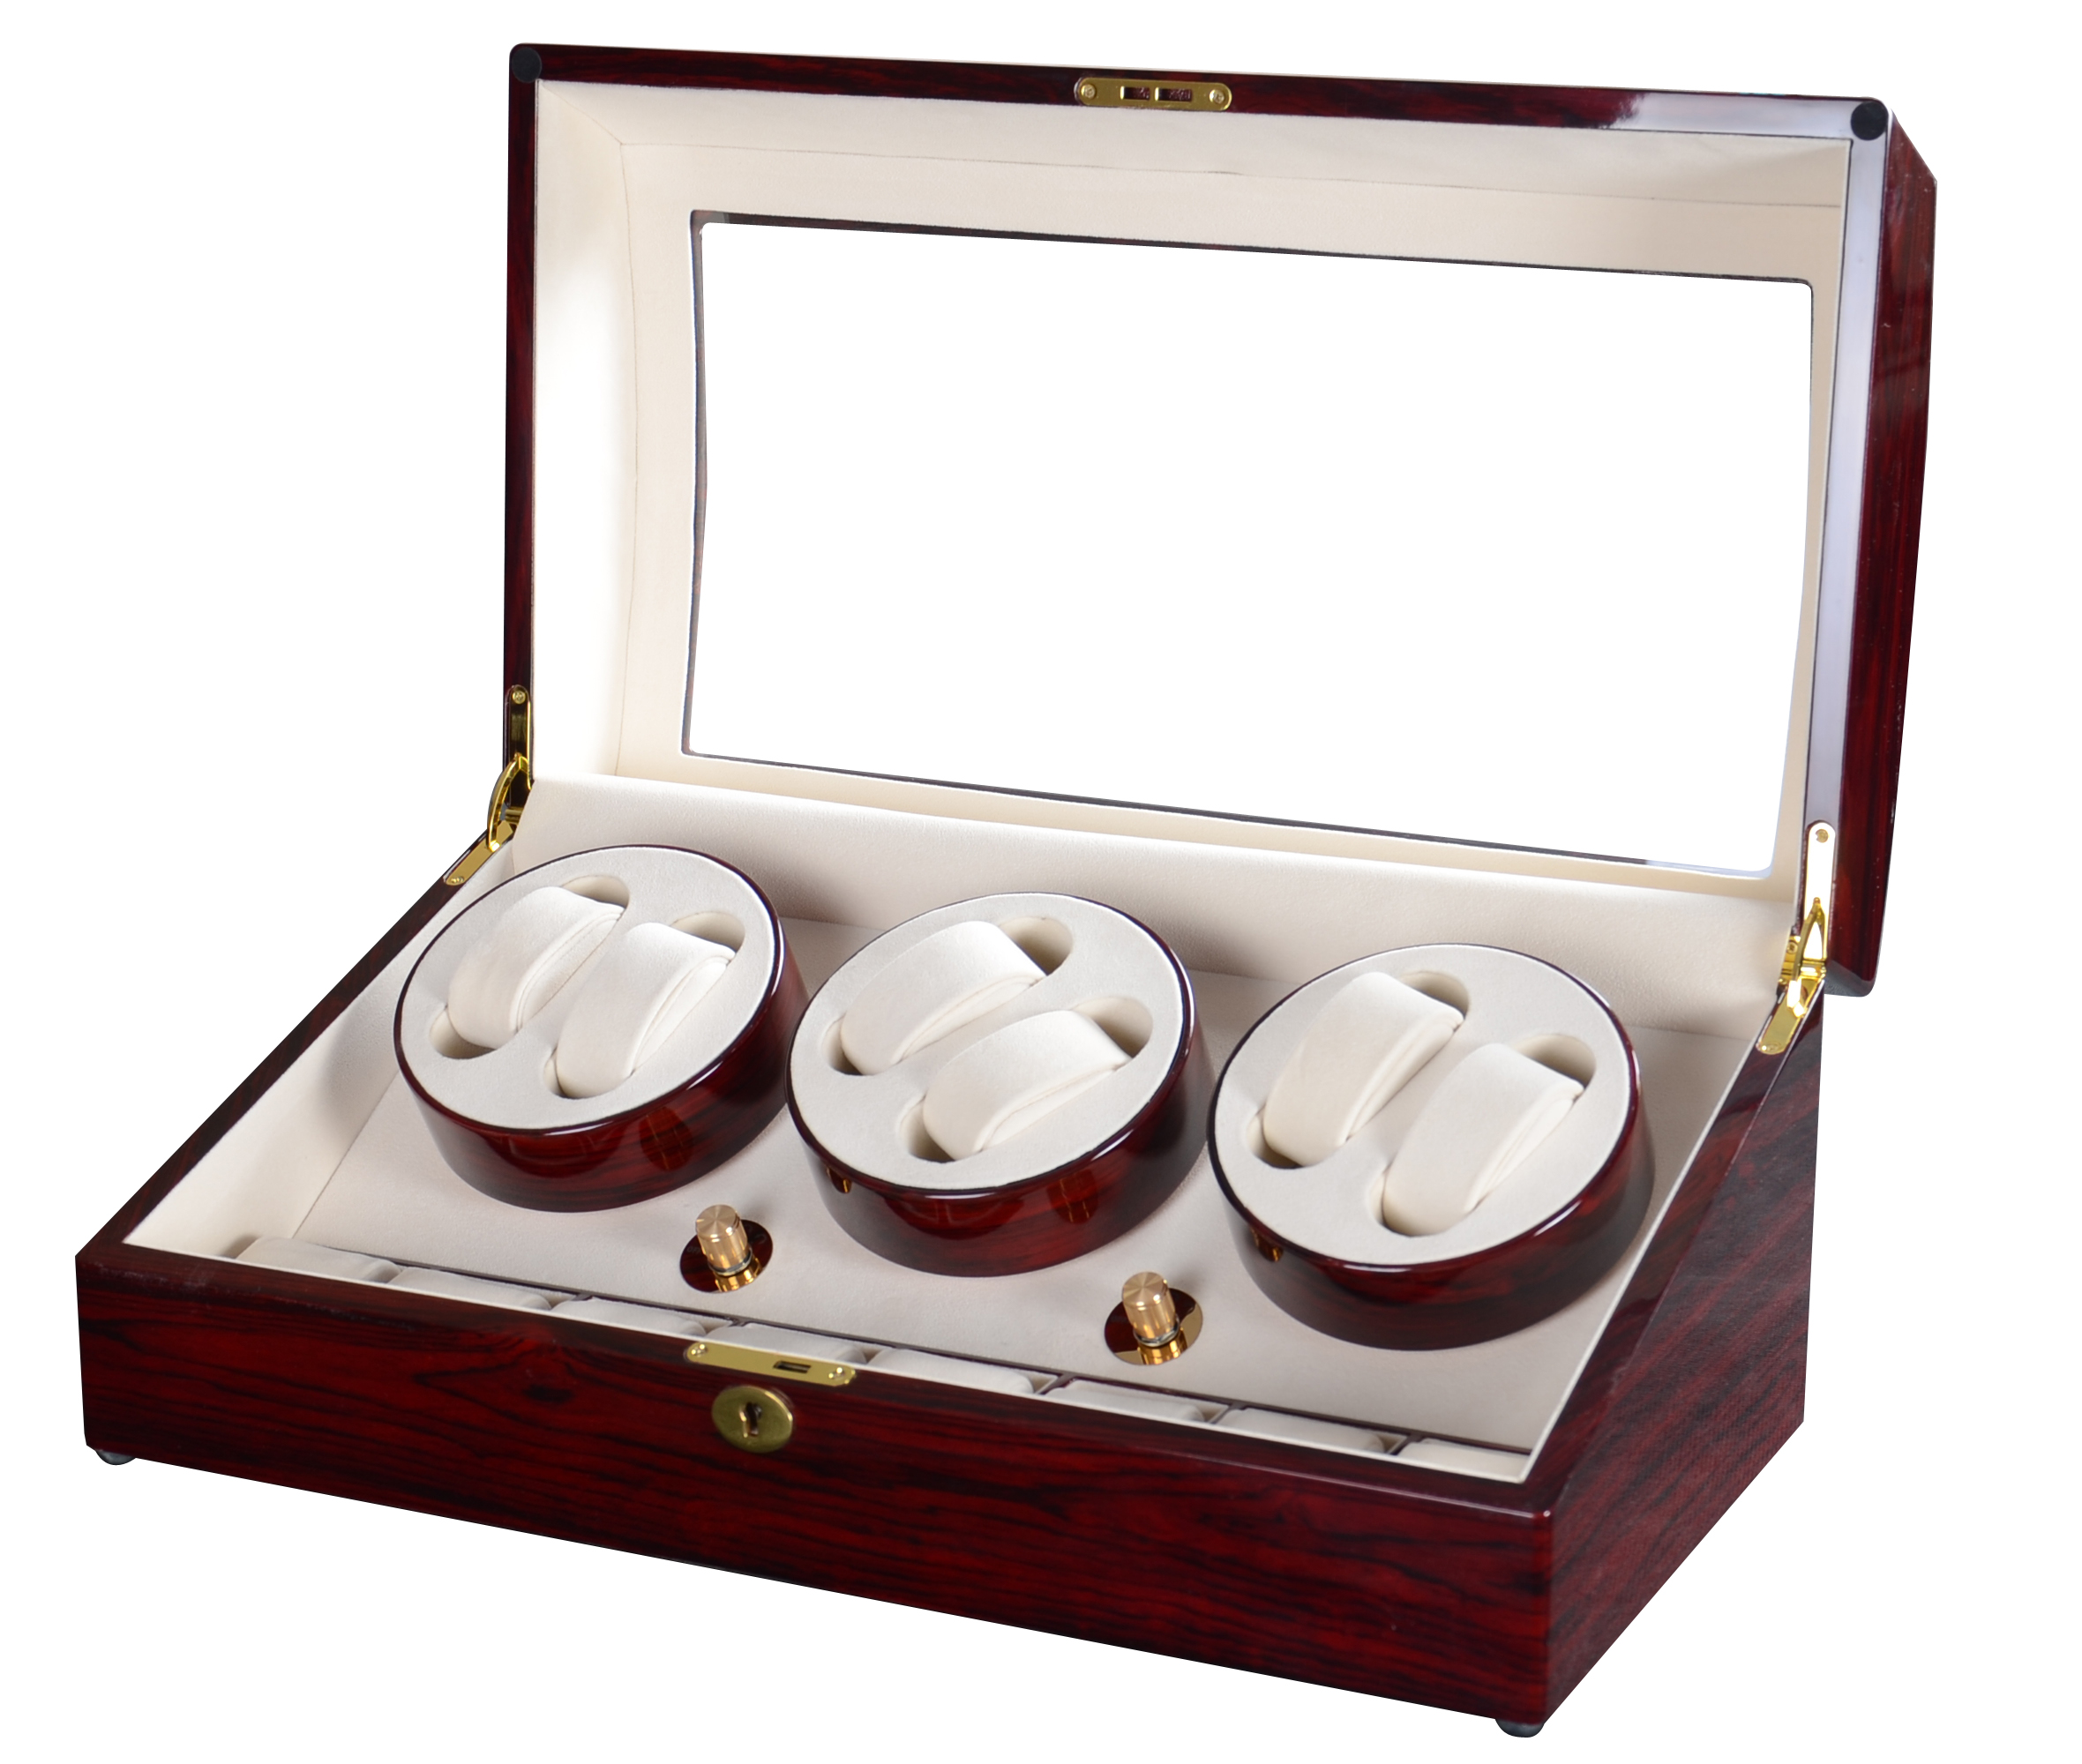 14 watch winder